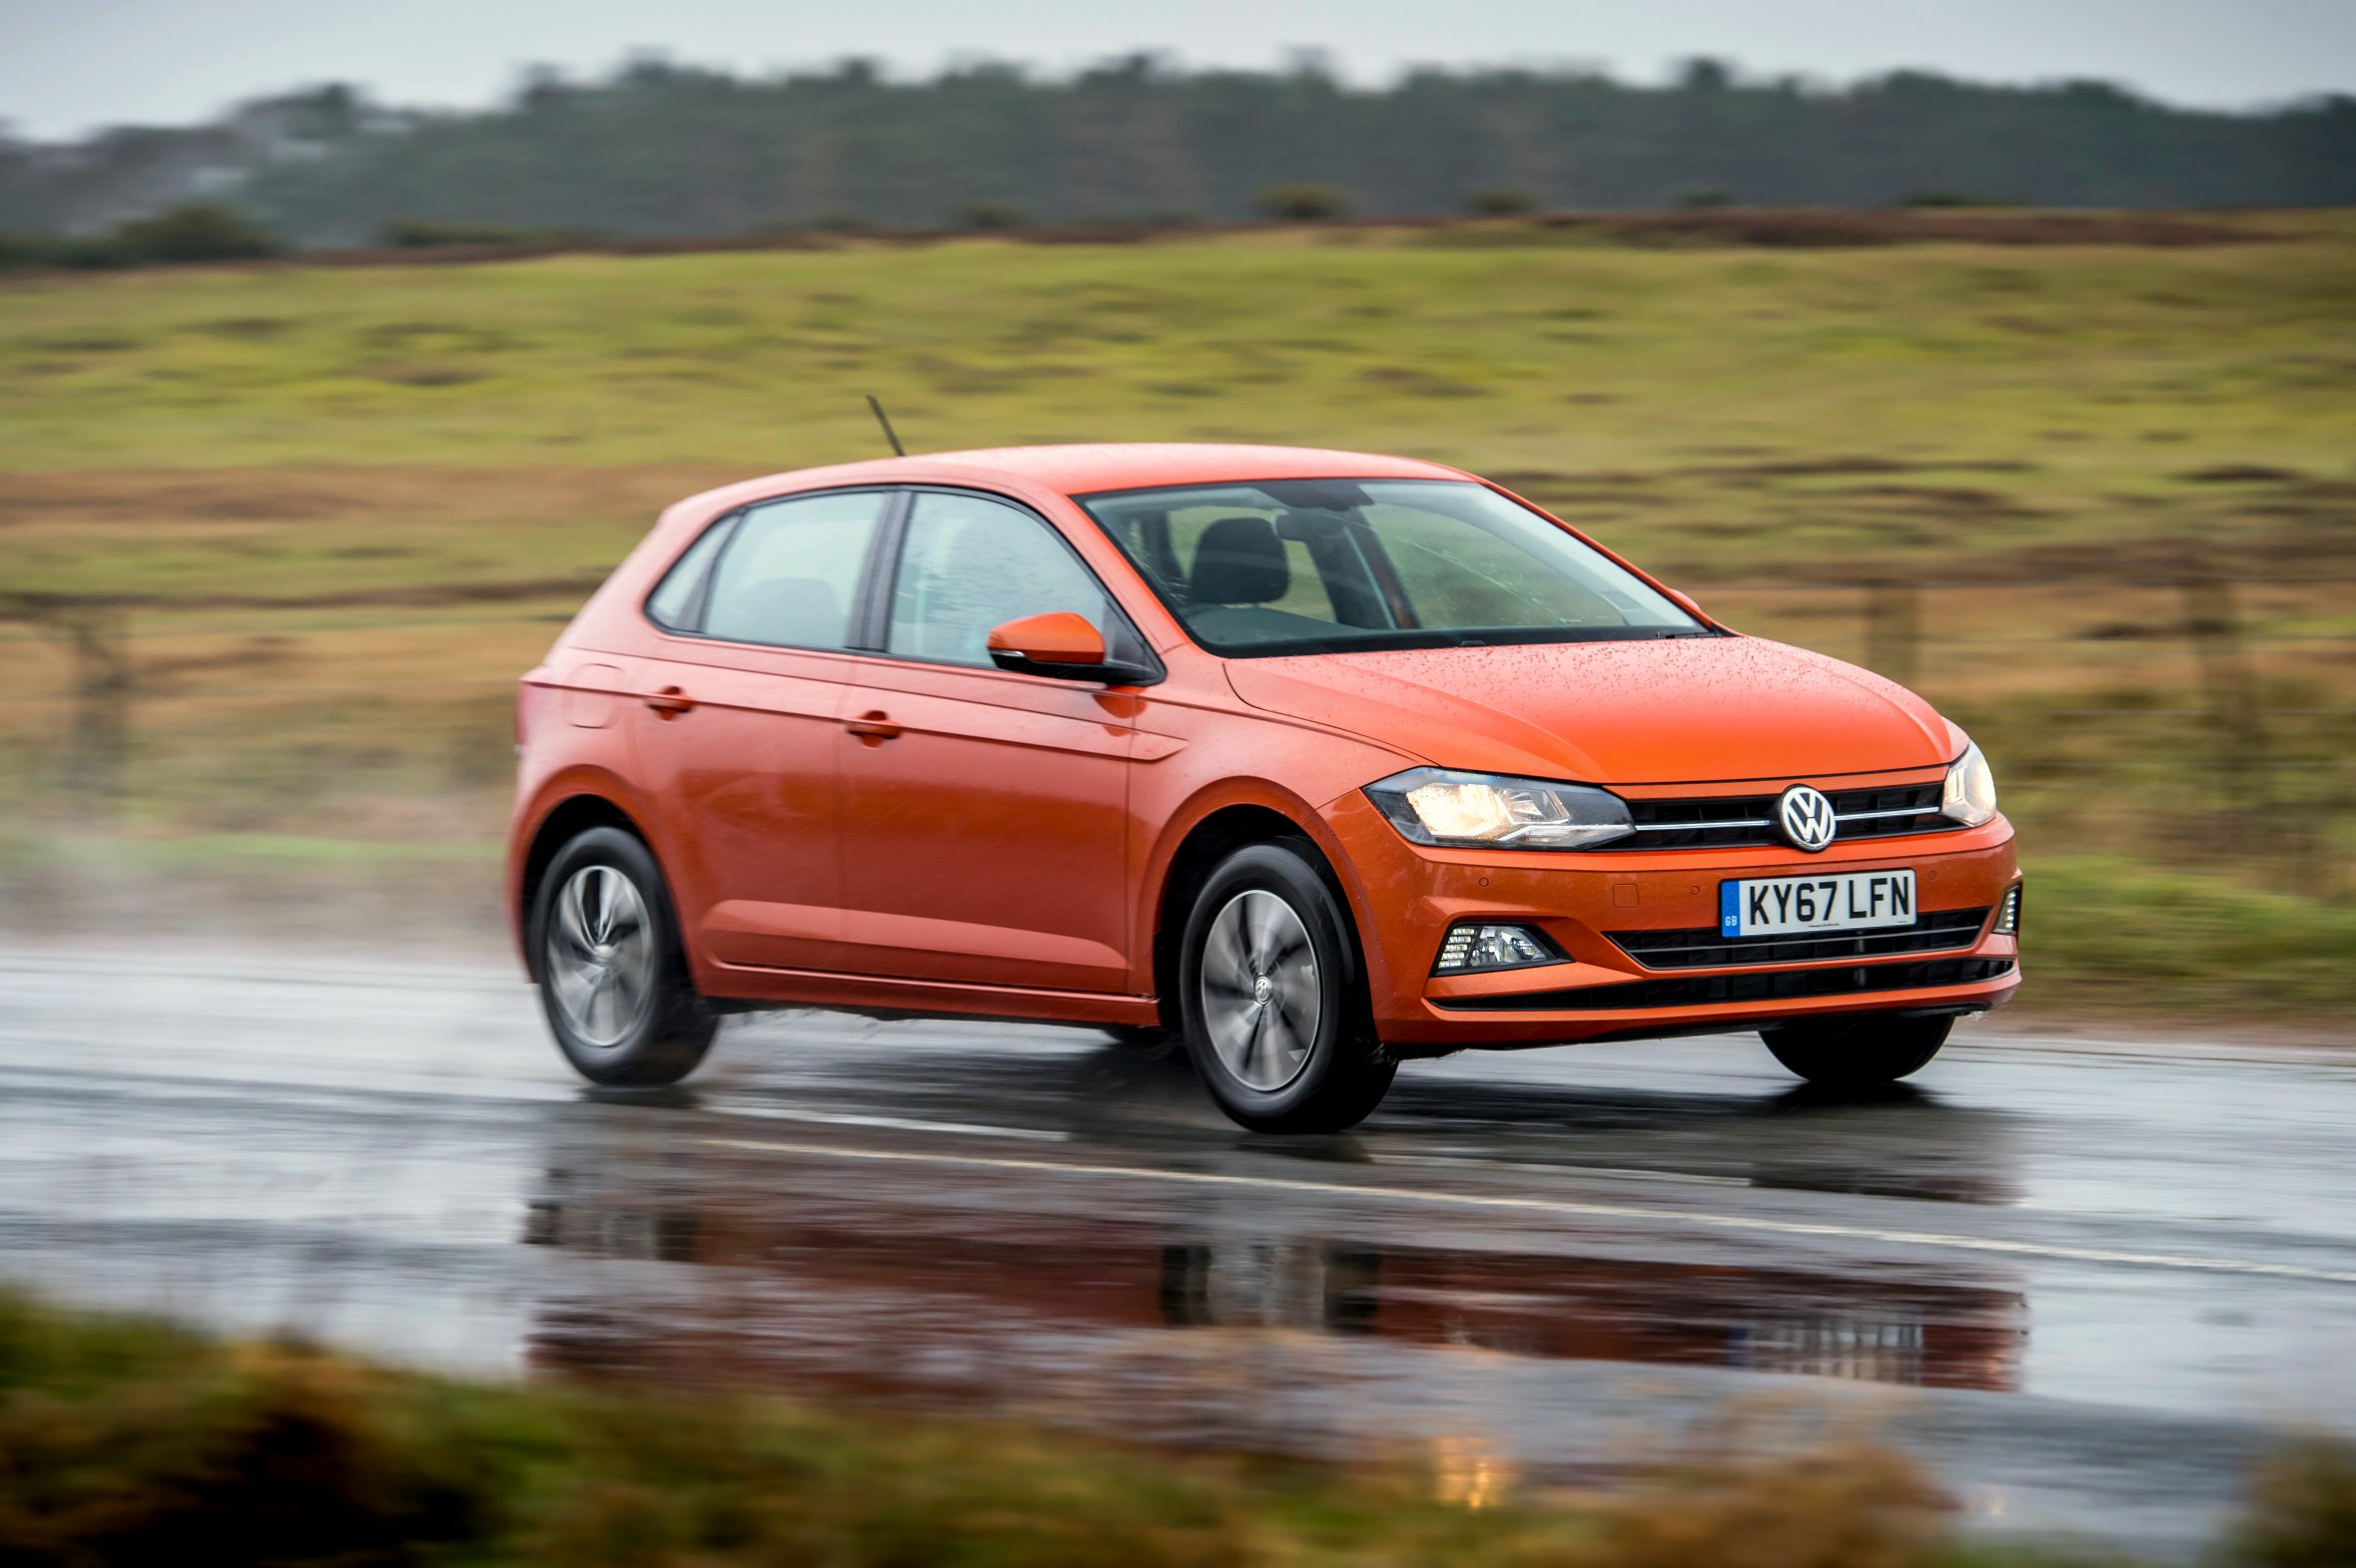 Orange metallic Volkswagen Polo driving on a very wet road